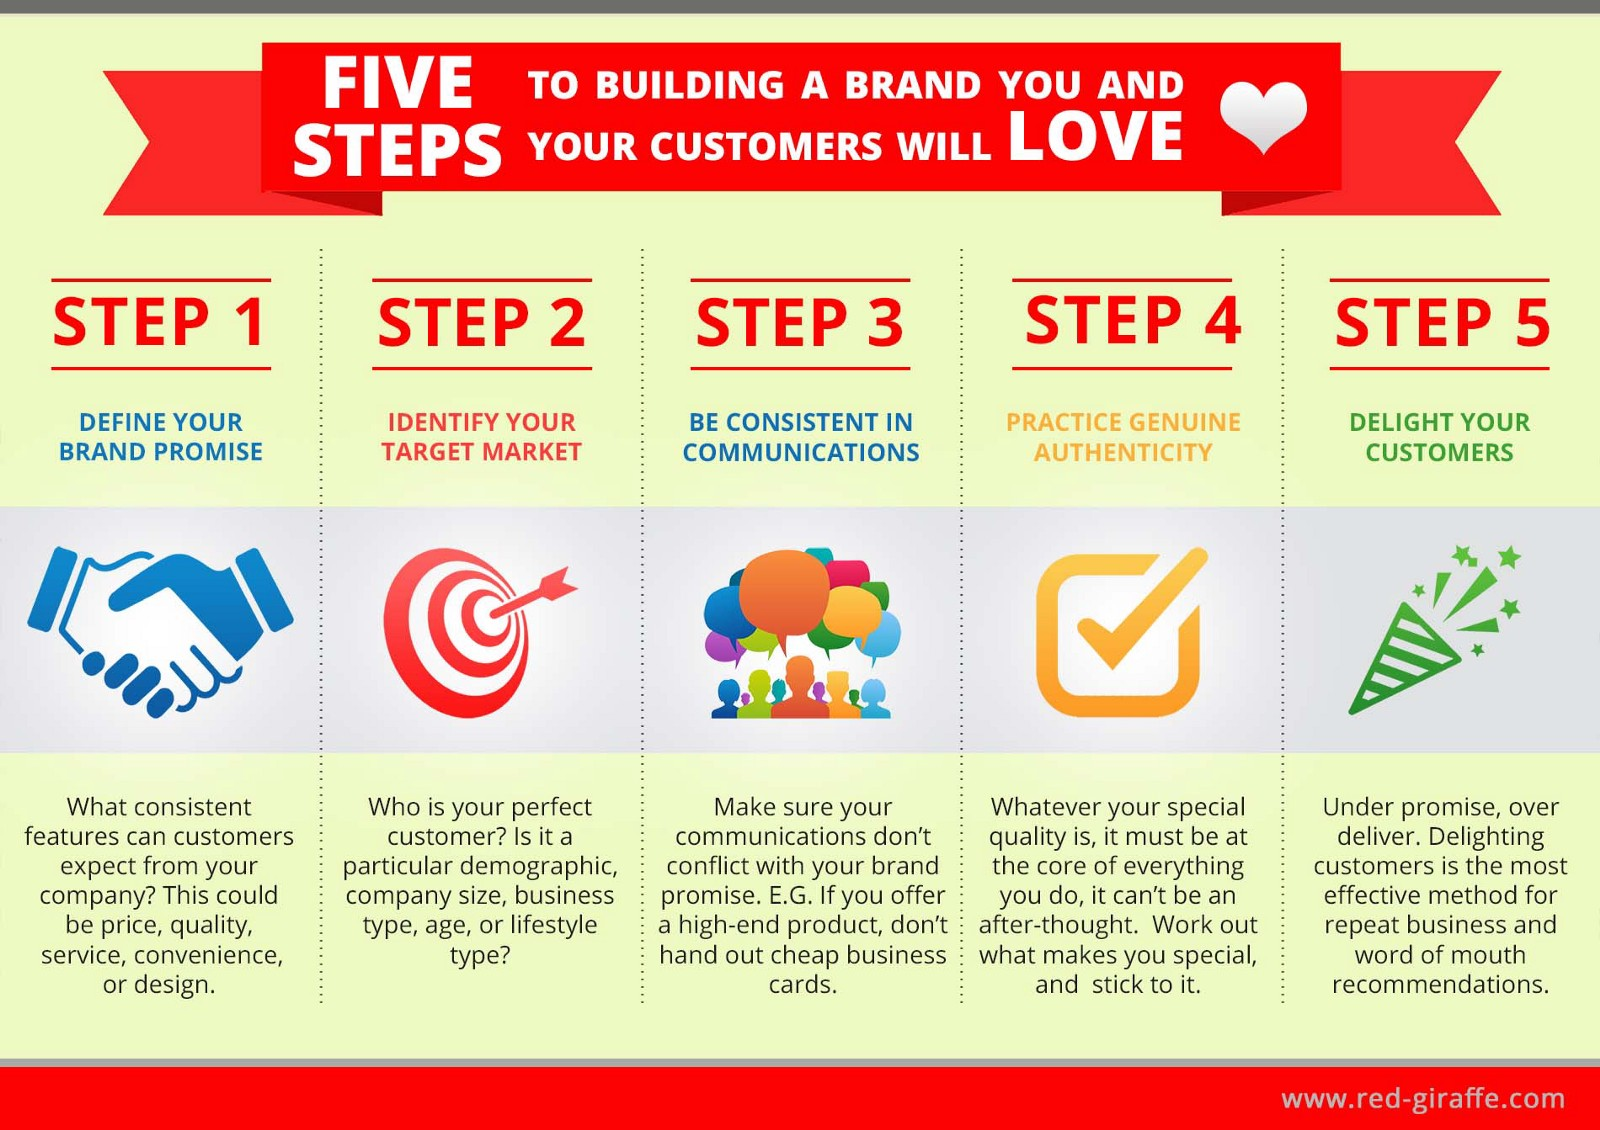 Steps to Building a Brand People Love